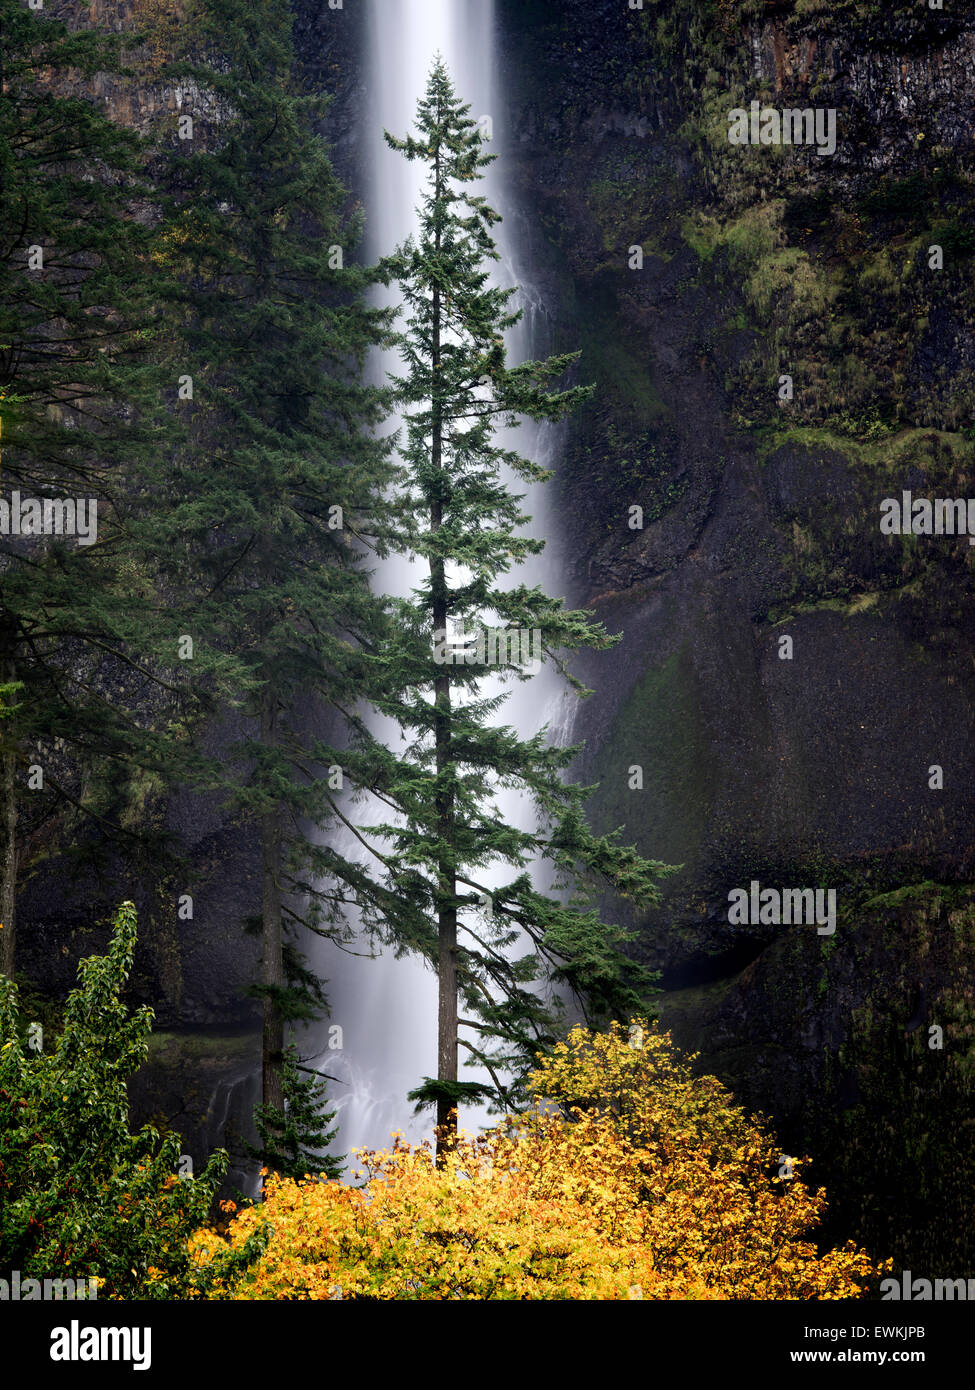 Multnomah Falls with lone tree and fall color. Columbia River Gorge National Scenic Area, Oregon - Stock Image